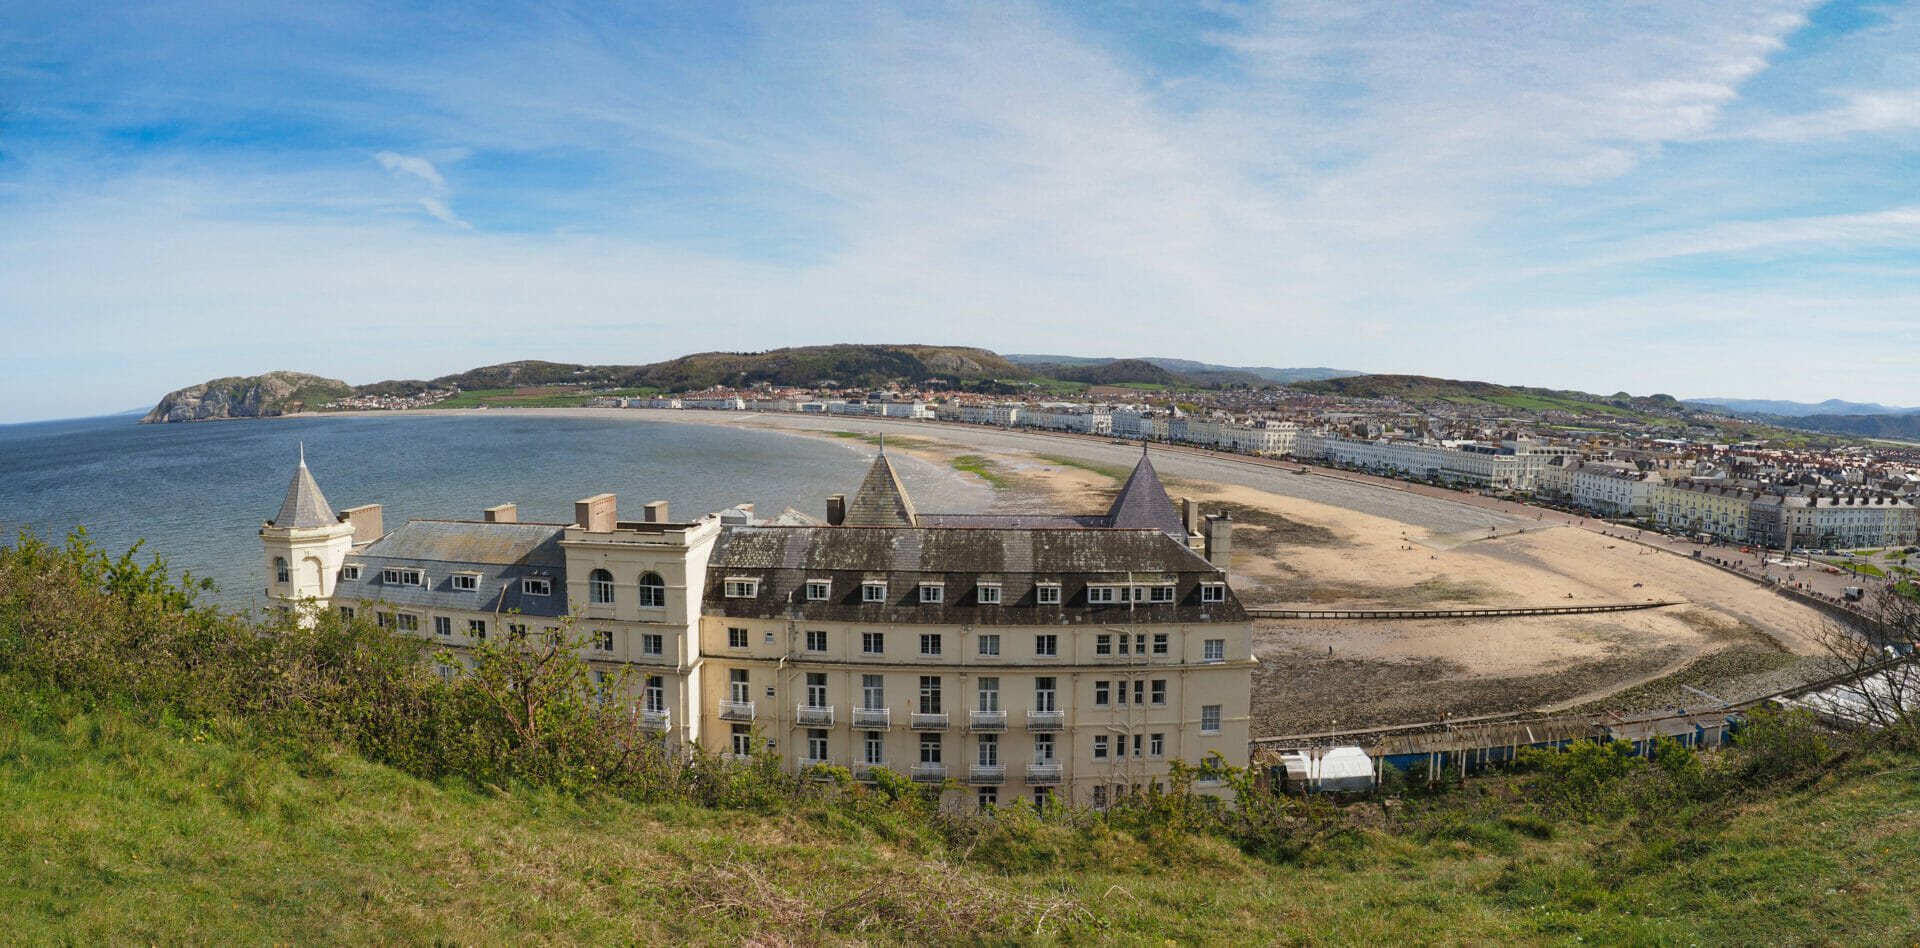 Panorama colour photo of the Grand Hotel taken from the Great Orme in North Wales overlooking the bay and town